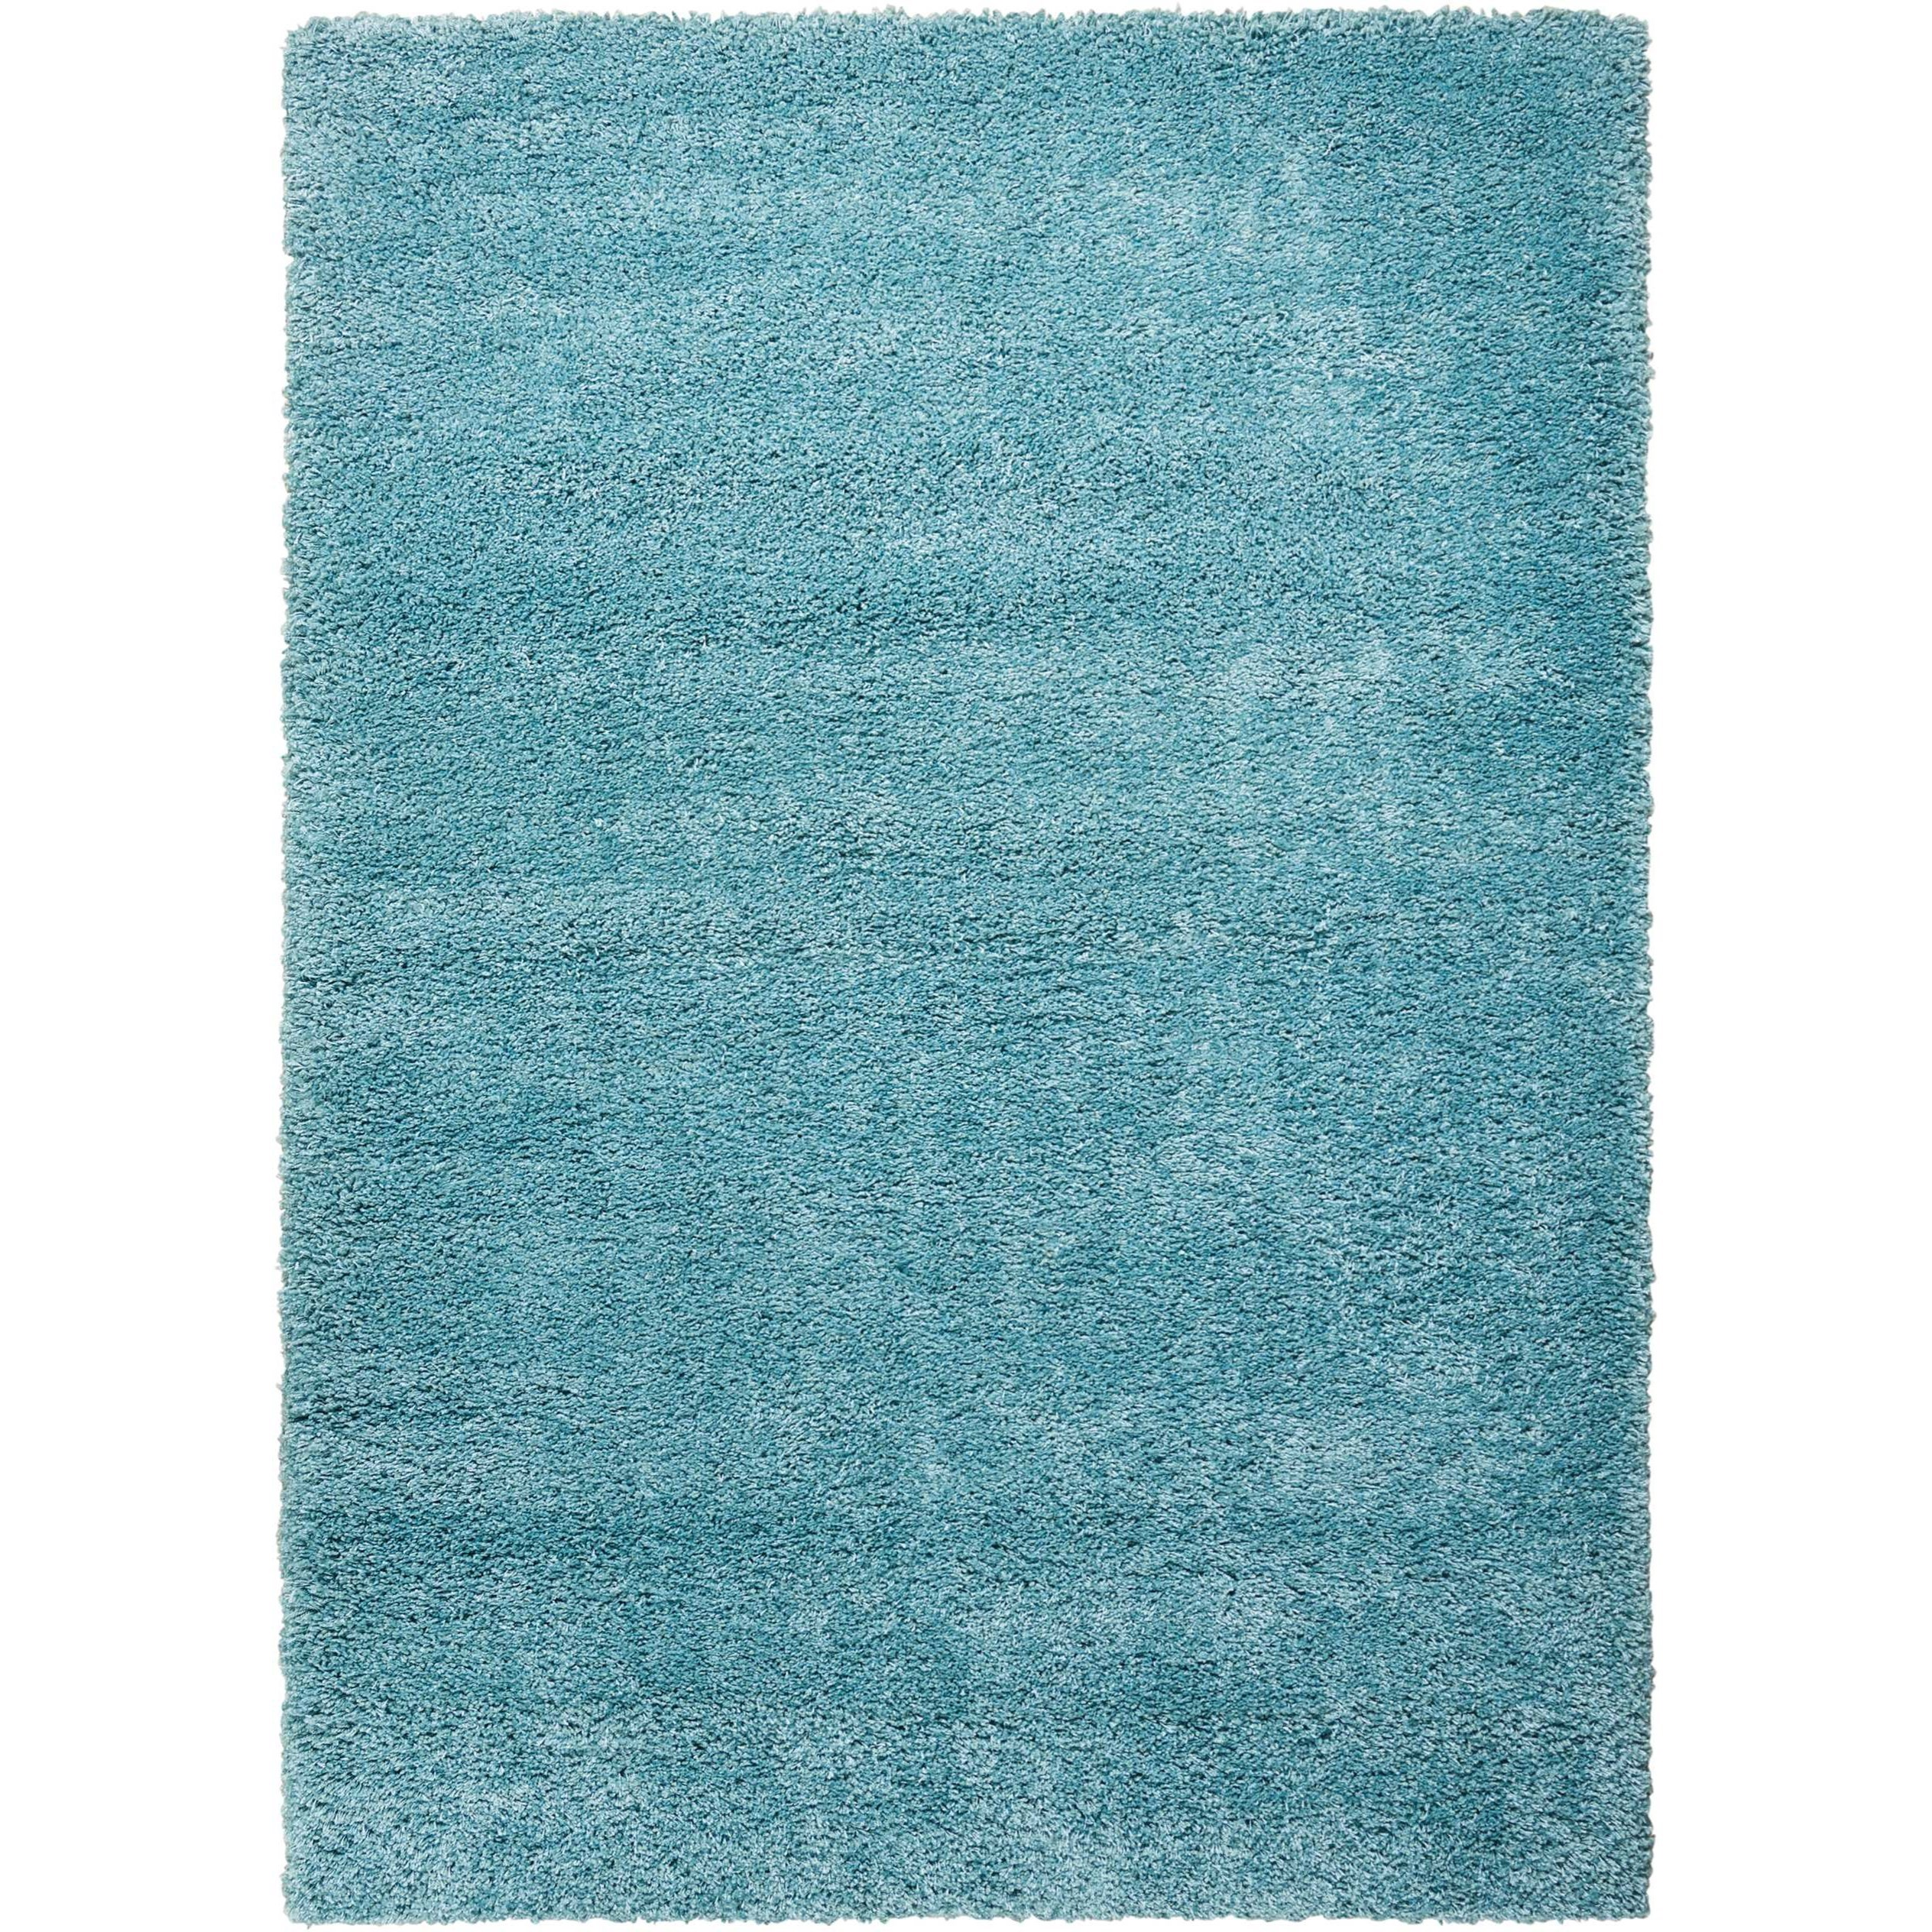 """Amore 5'3"""" x 7'5"""" Aqua Rectangle Rug by Nourison at Home Collections Furniture"""